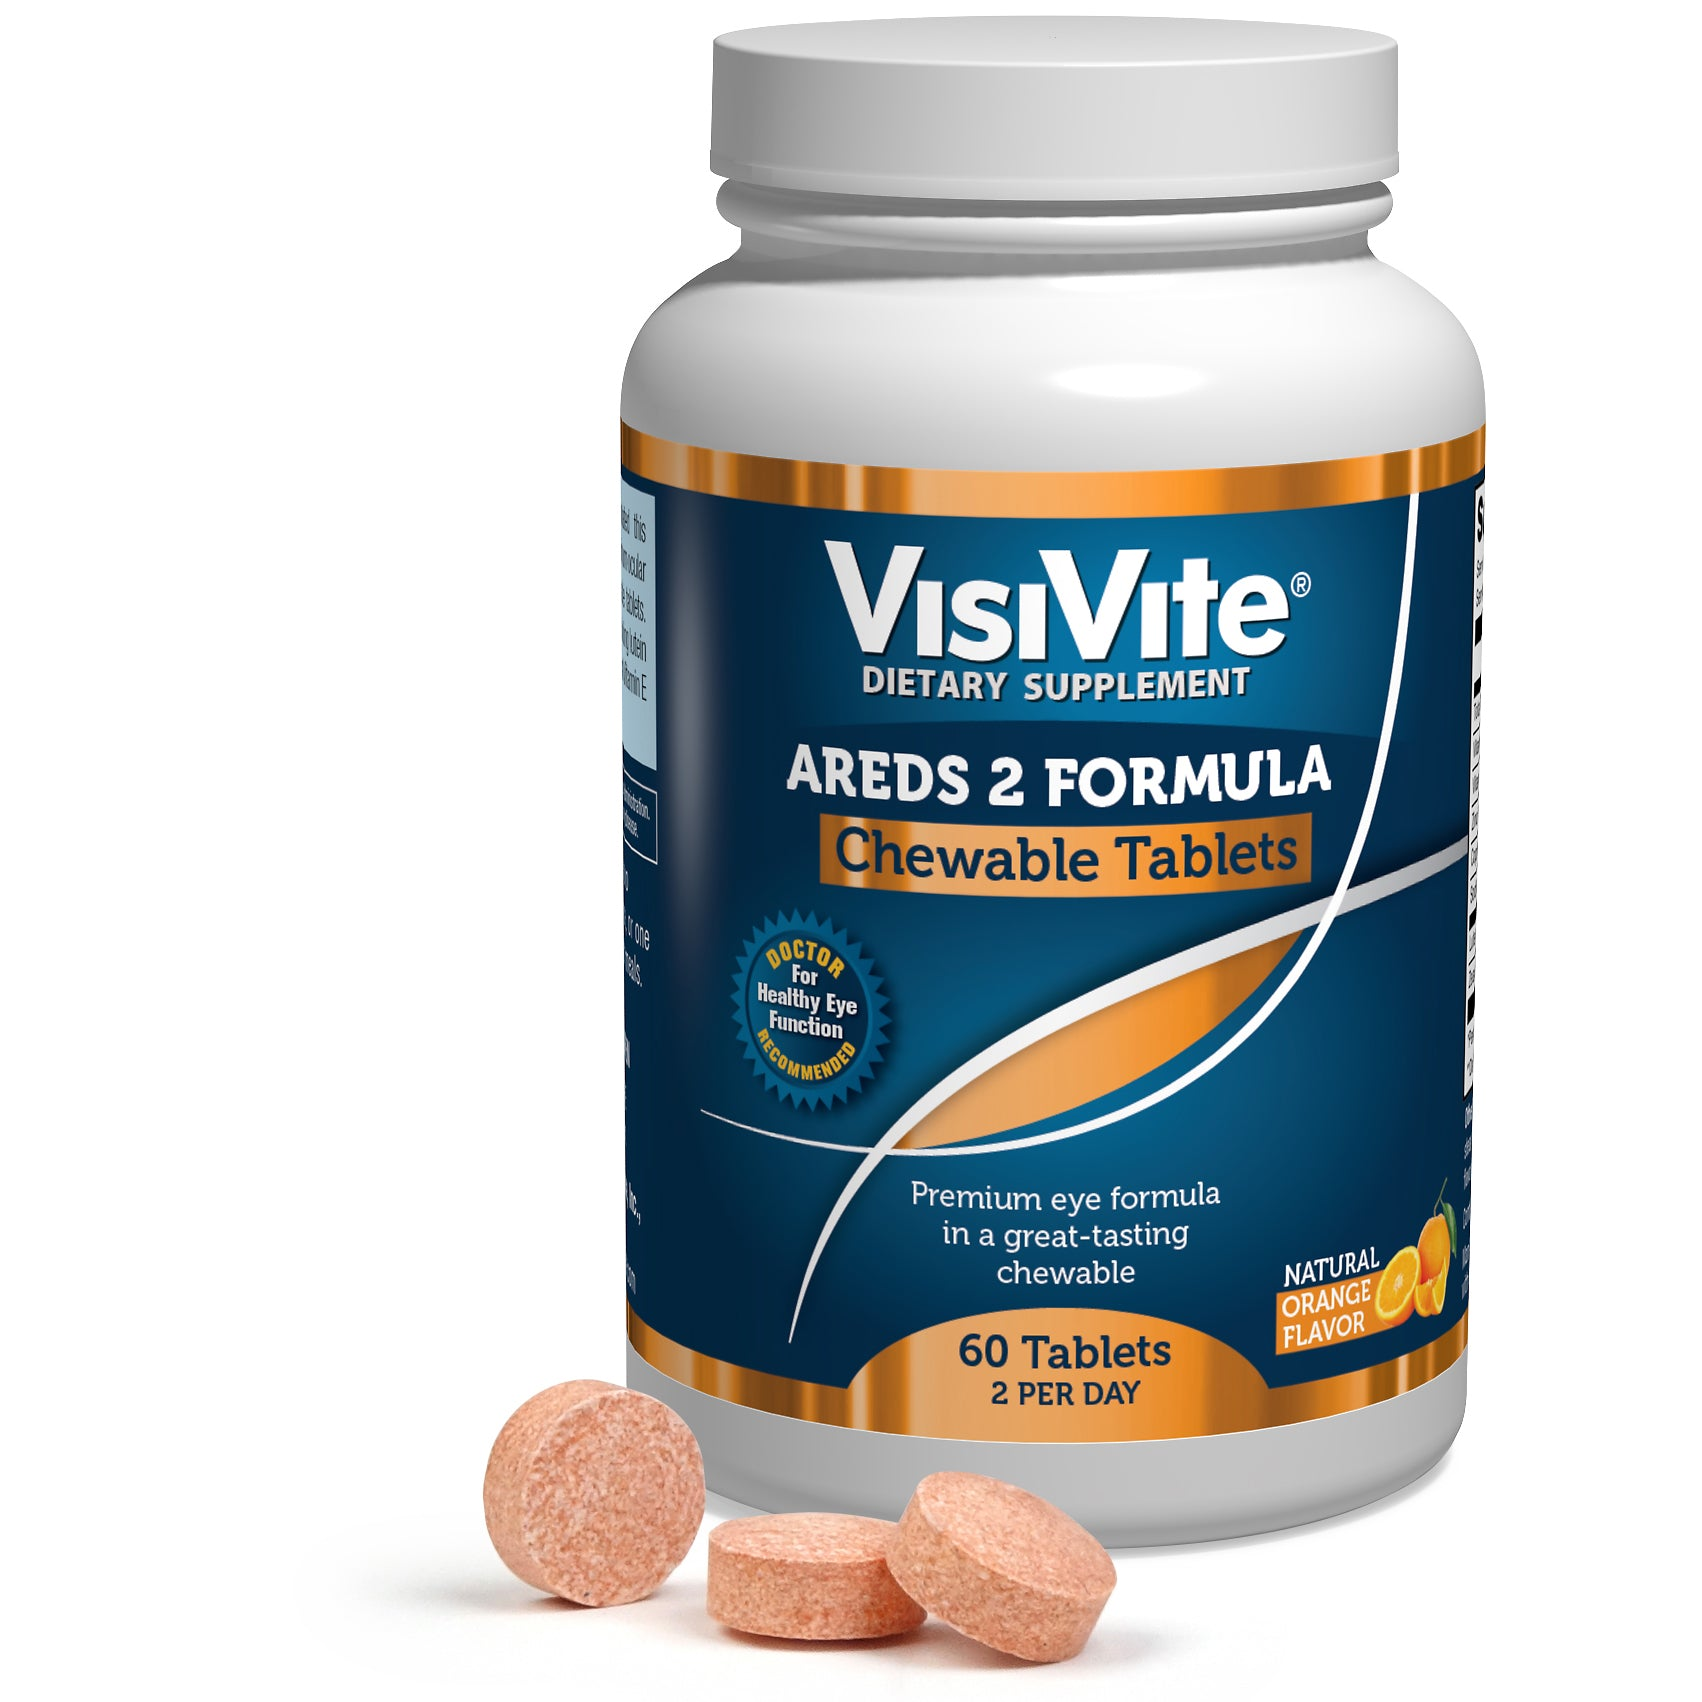 Vitamin Science Announces VisiVite Sugar-Free Chewable AREDS 2 Vitamins for Macular Degeneration